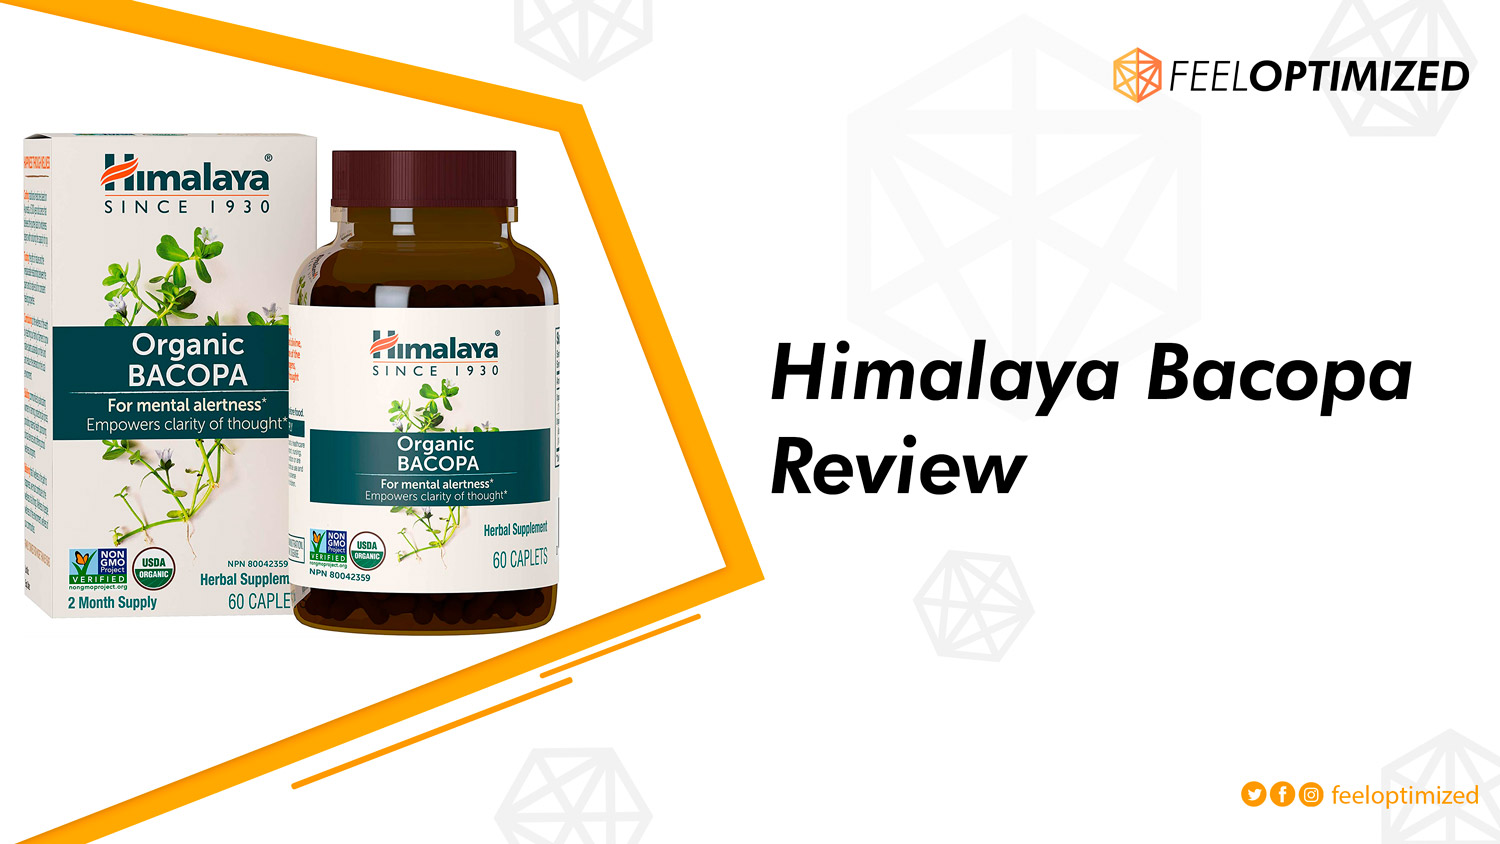 himalaya-bacopa-reviews